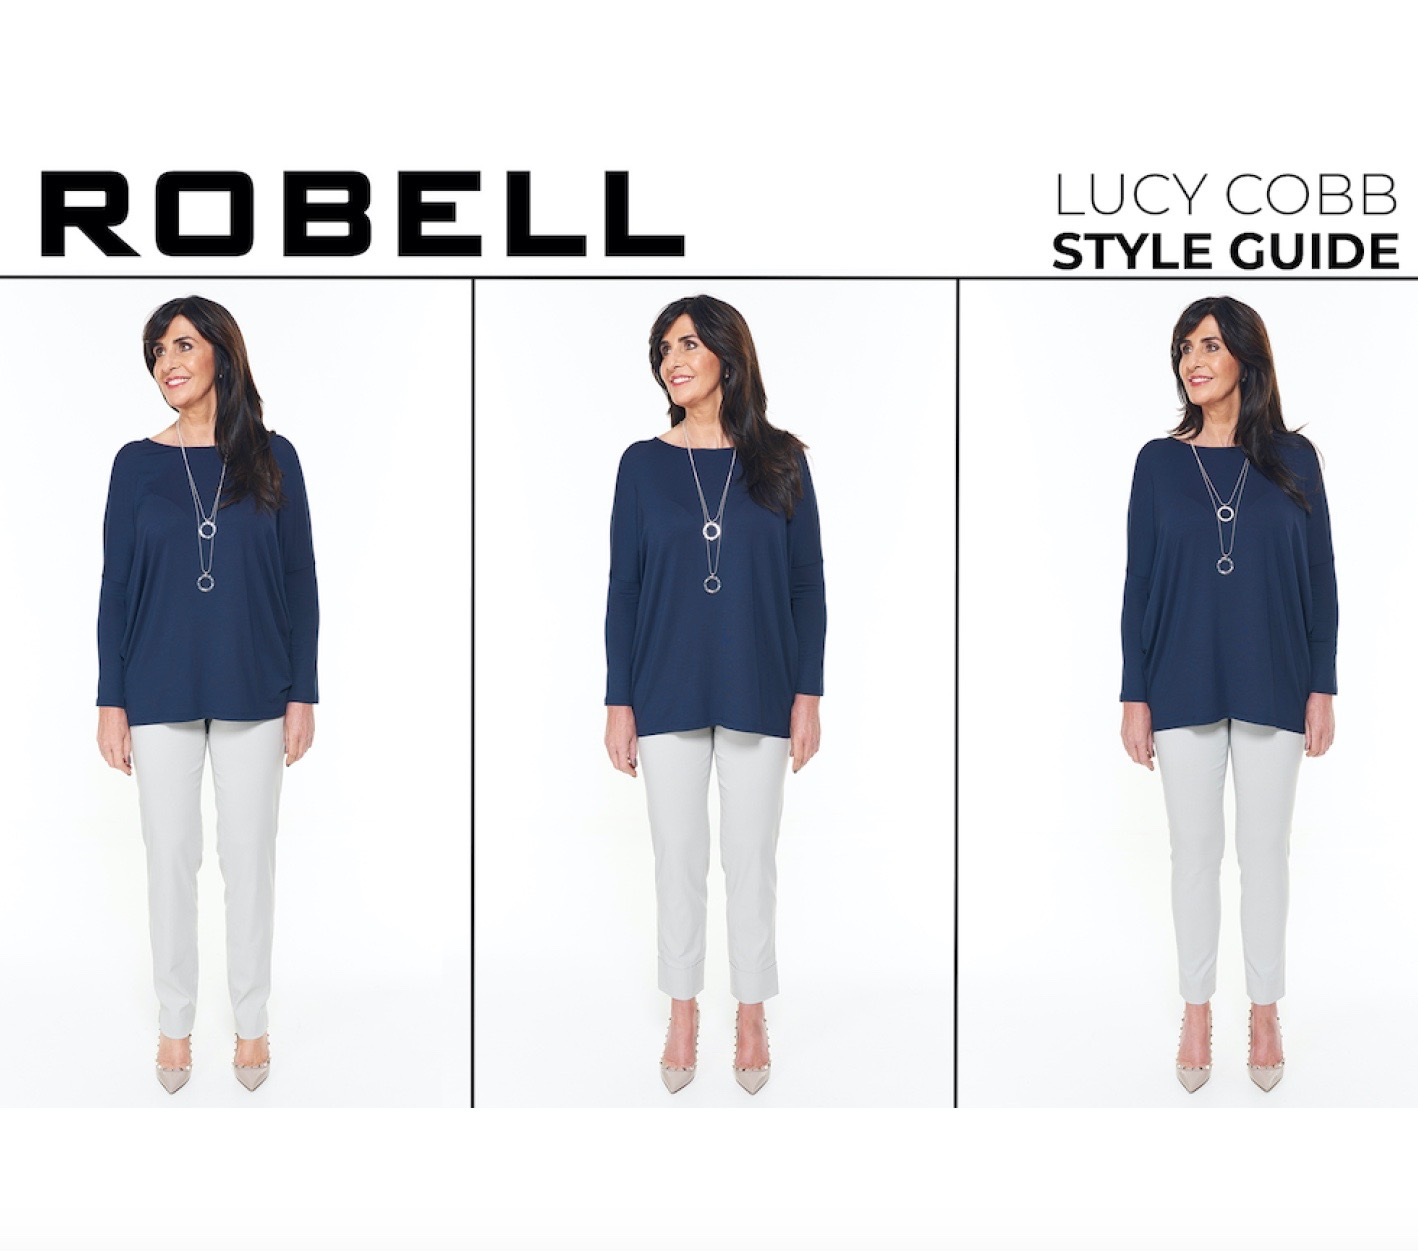 Lucy Cobb Robell Trouser Style Guide